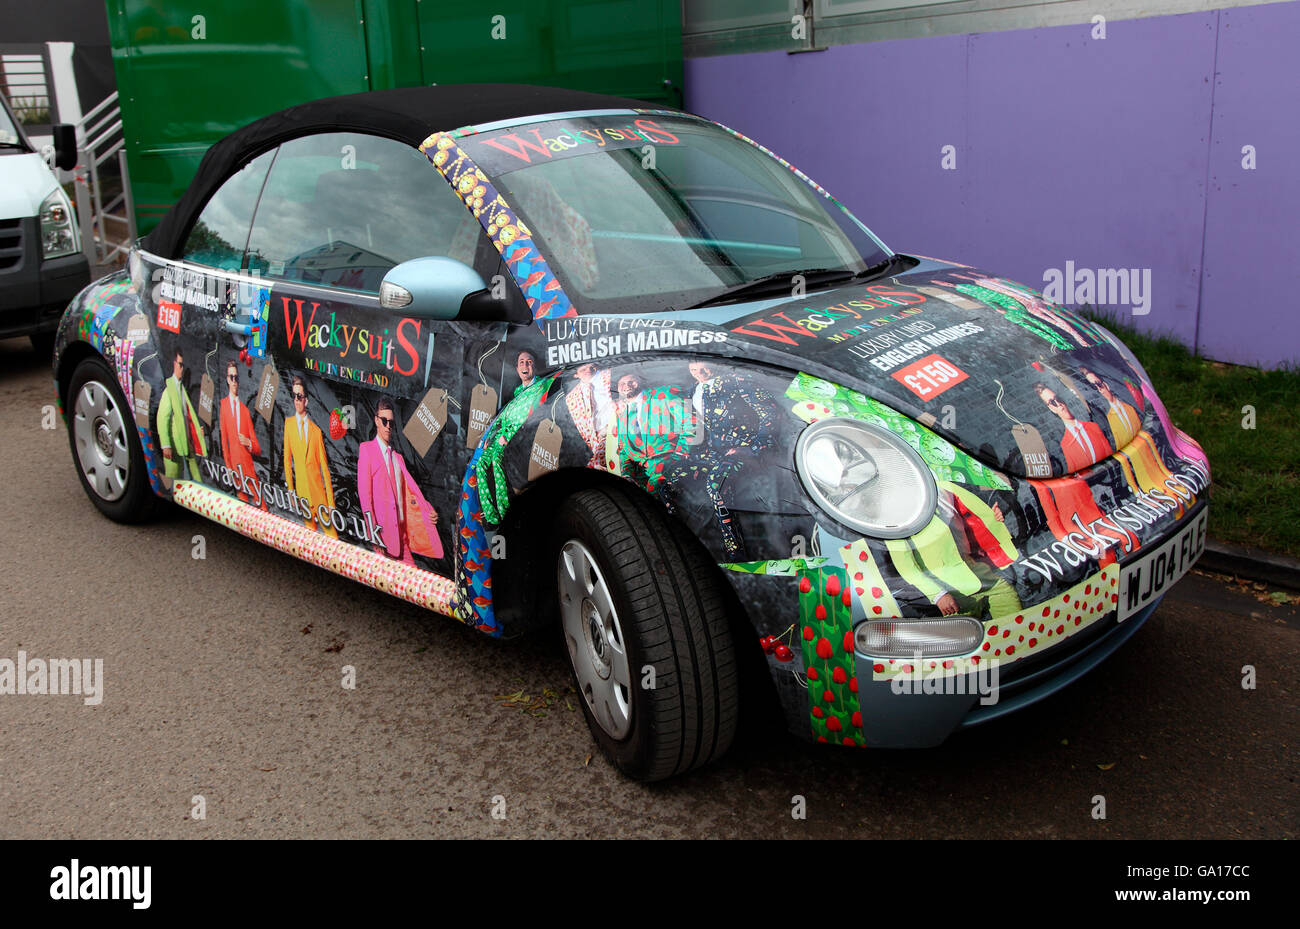 Wacky Suits Volkswagon Beetle at RHS Chelsea Flower Show 2016 - Stock Image